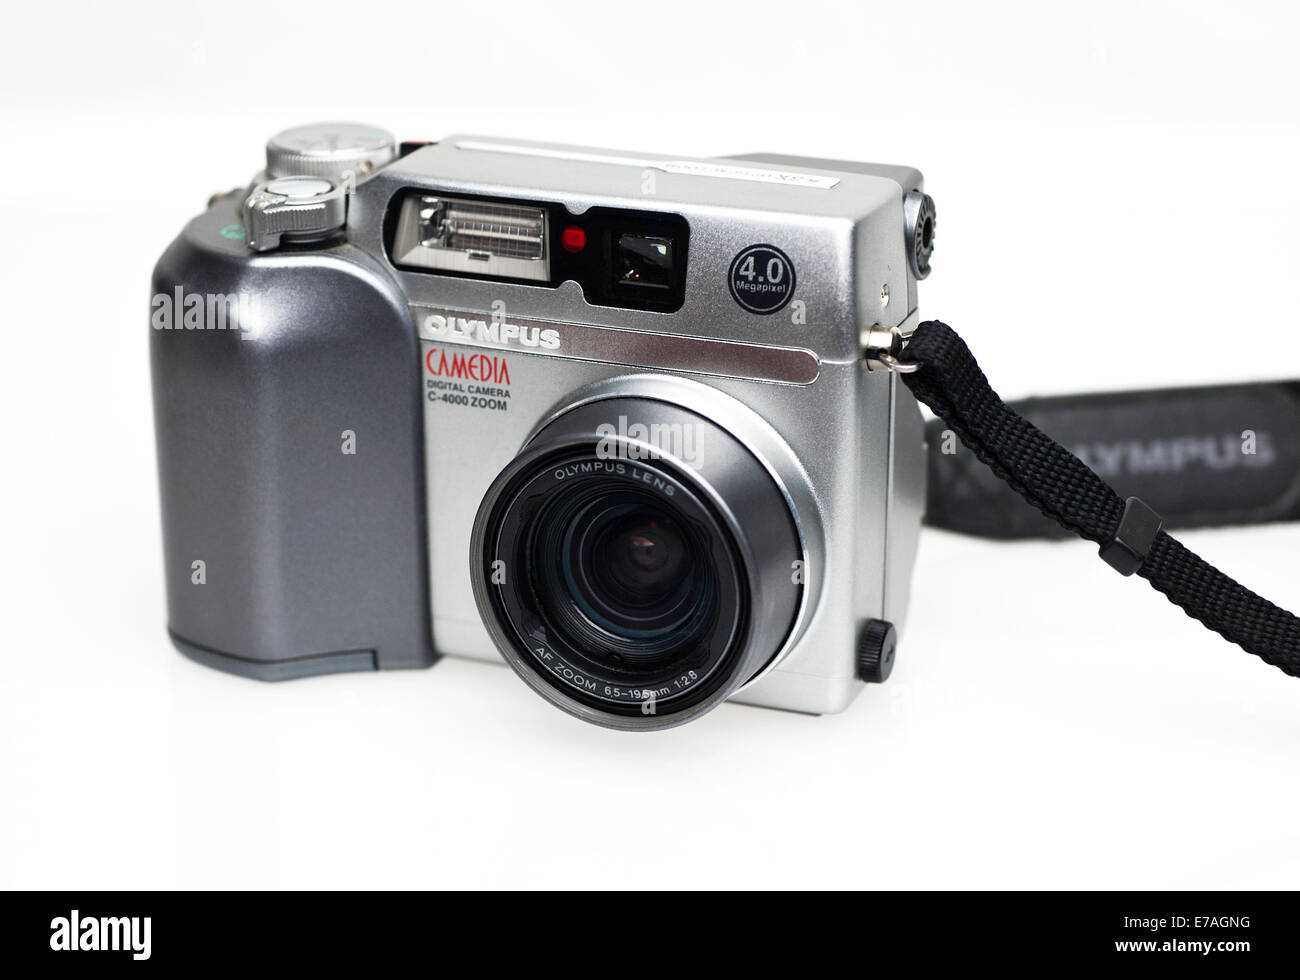 Olympus Camedia Digital Camera C-4000 Zoom 4.0 Megapixel Point and Shoot Camera on white background - Stock Image